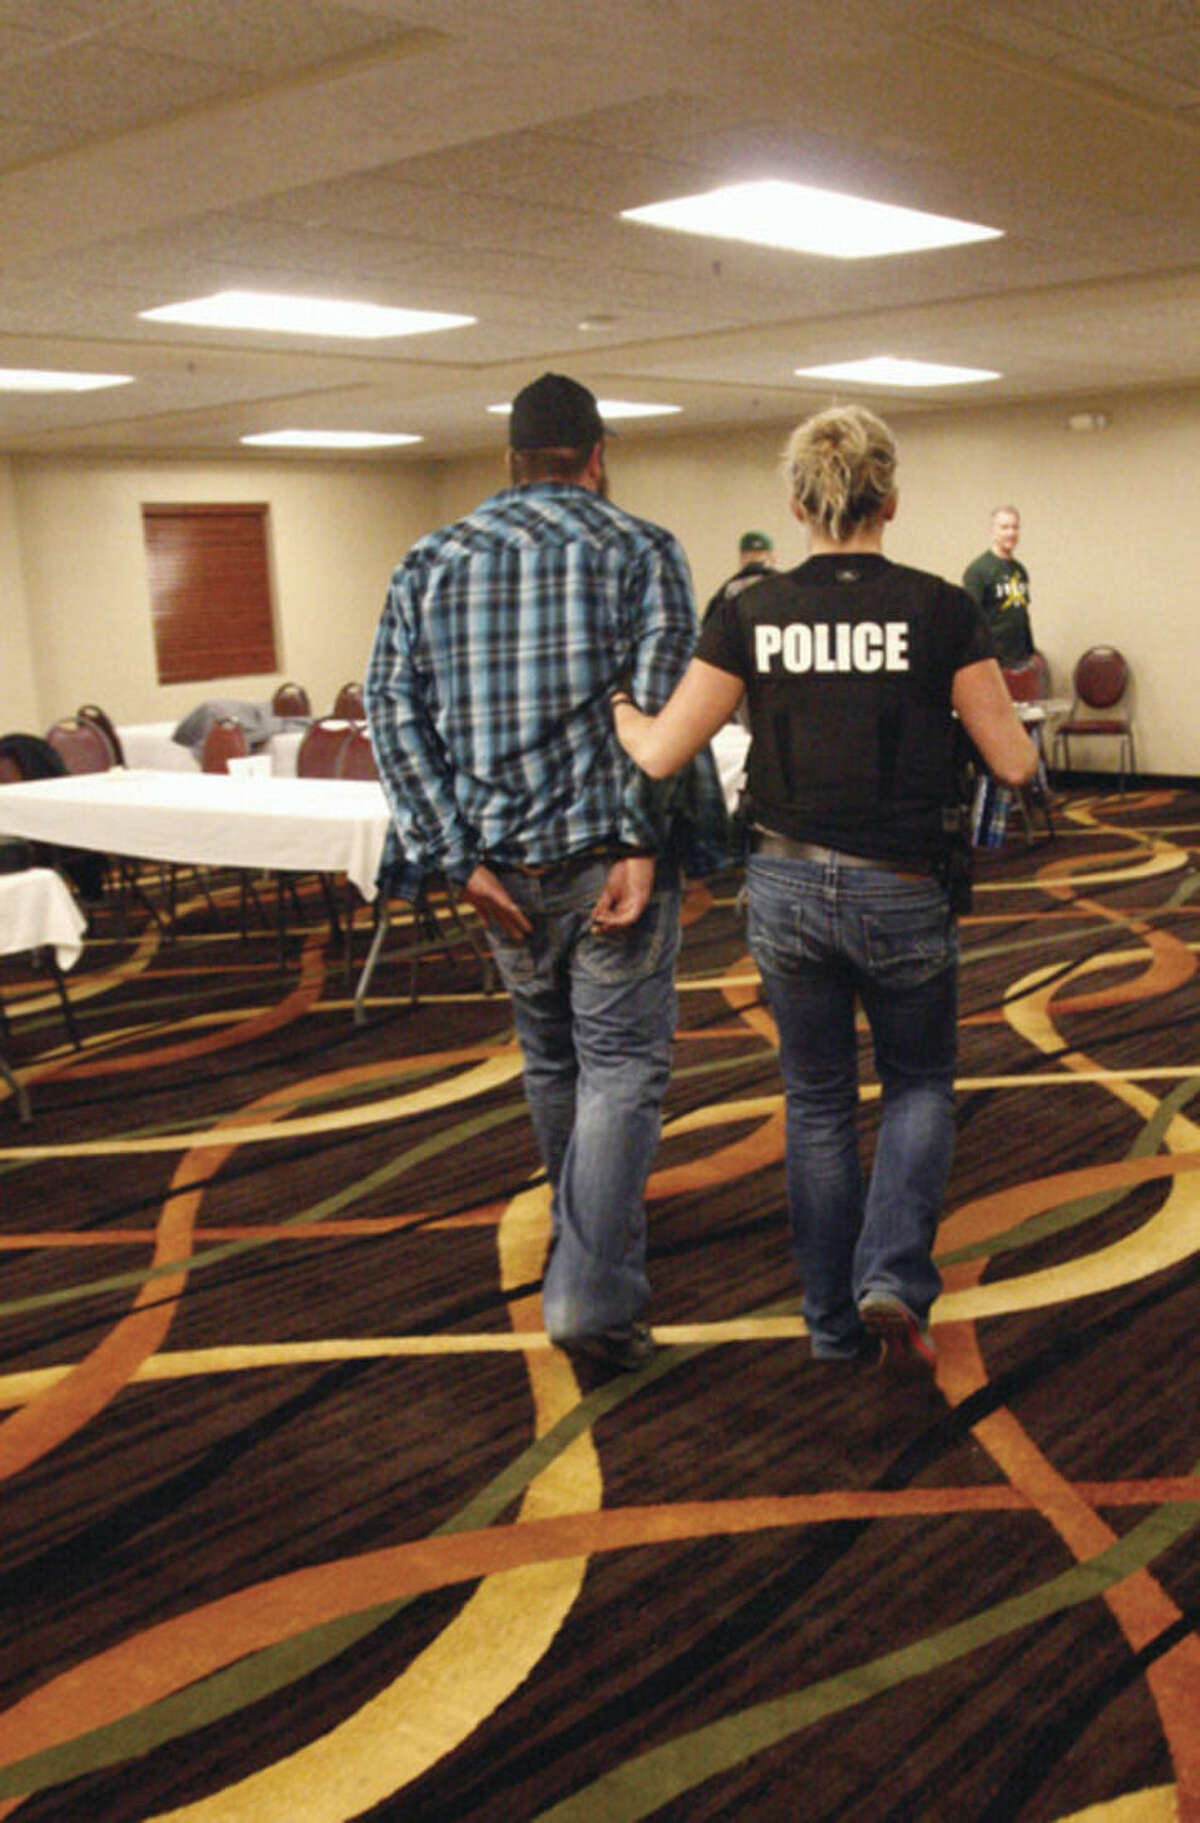 AP photo/Martha Irvine A police officer escorts a man arrested for prostitution solicitation at a hotel in Minot, N.D., in the early morning hours of Saturday, Jan. 31. Sex trafficking has become a big problem in North Dakota amid an oil boom that has brought in money and oil workers. The Minot police sting ended with the arrests of 13 men, who answered ads on an escort website posted by the undercover officers.